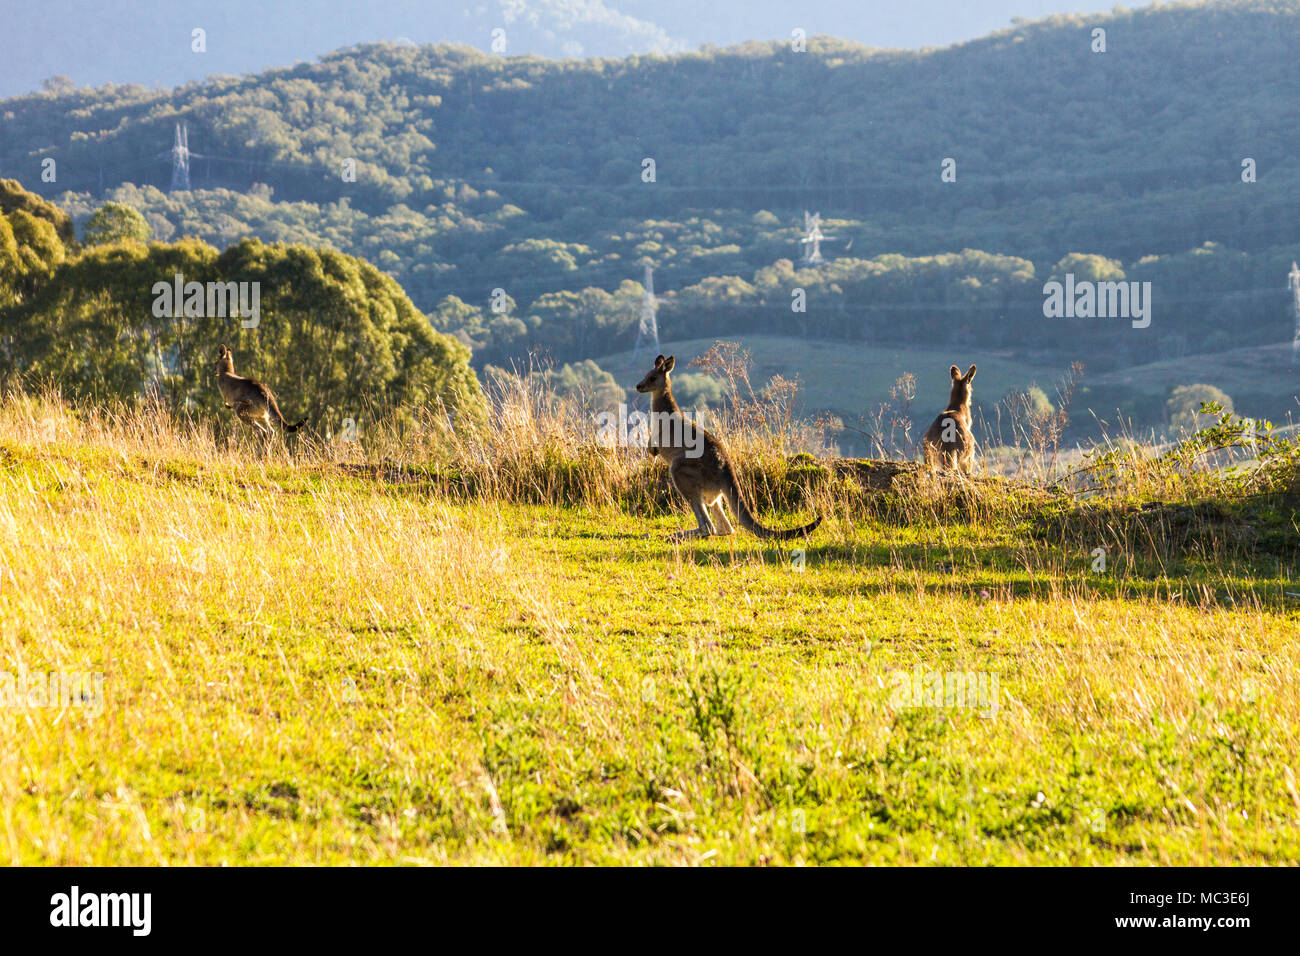 Kangaroos hopping on the edge of a mountain, lit by the sun with another mountain in the background - Stock Image